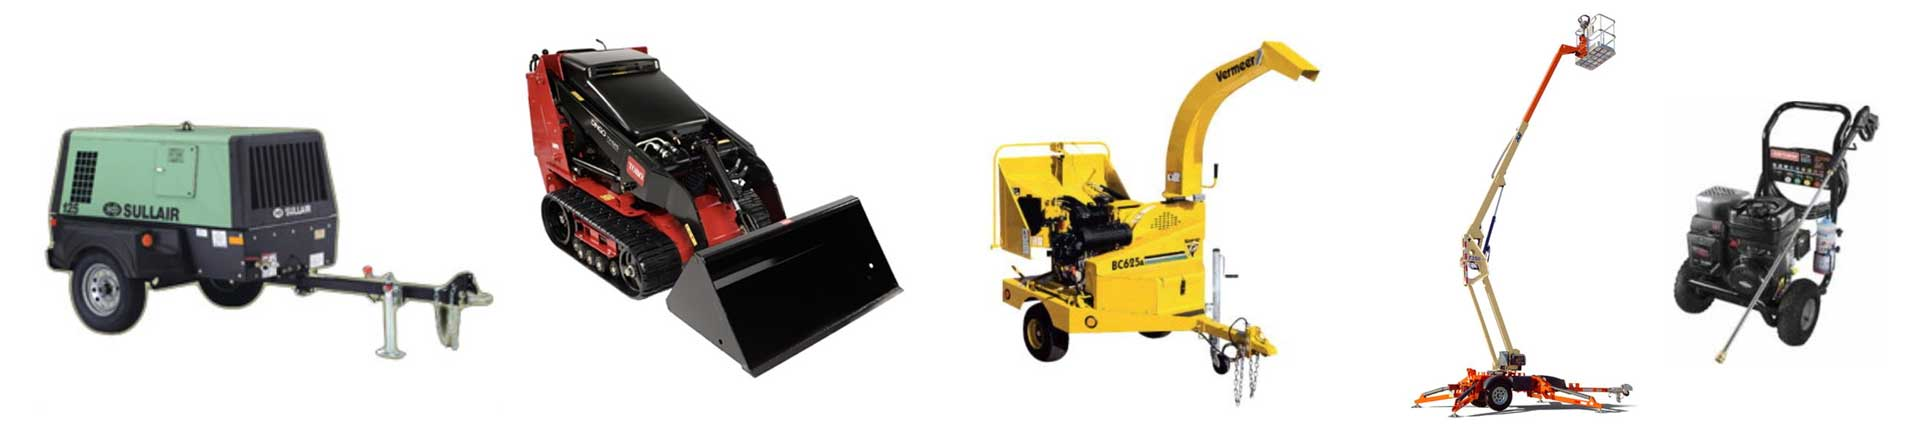 Equipment rentals in La Porte County and Northwest Indiana